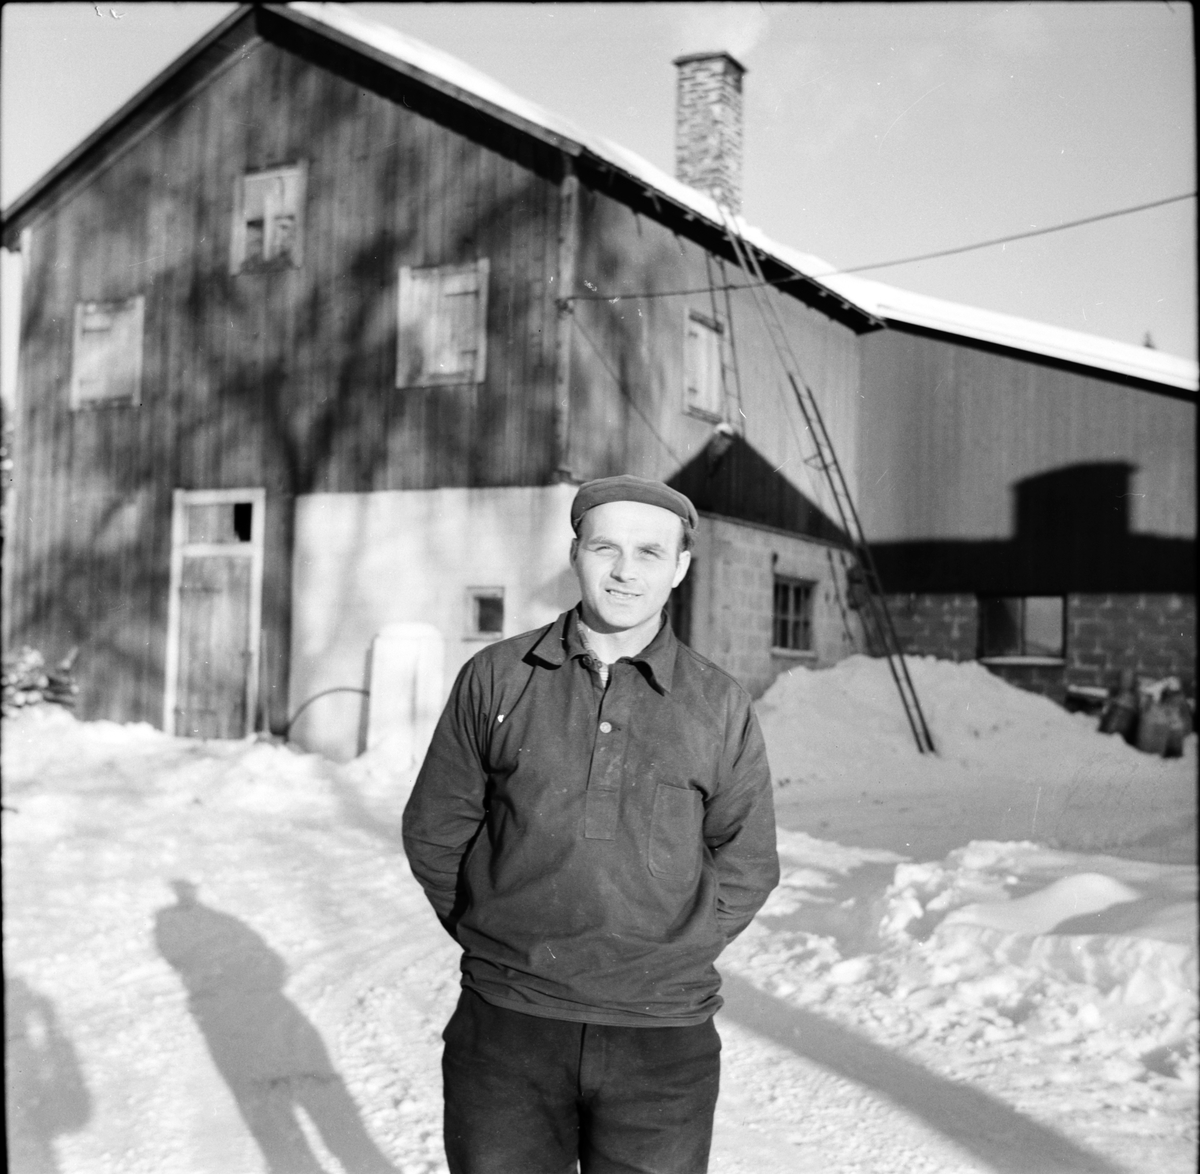 Arbrå,